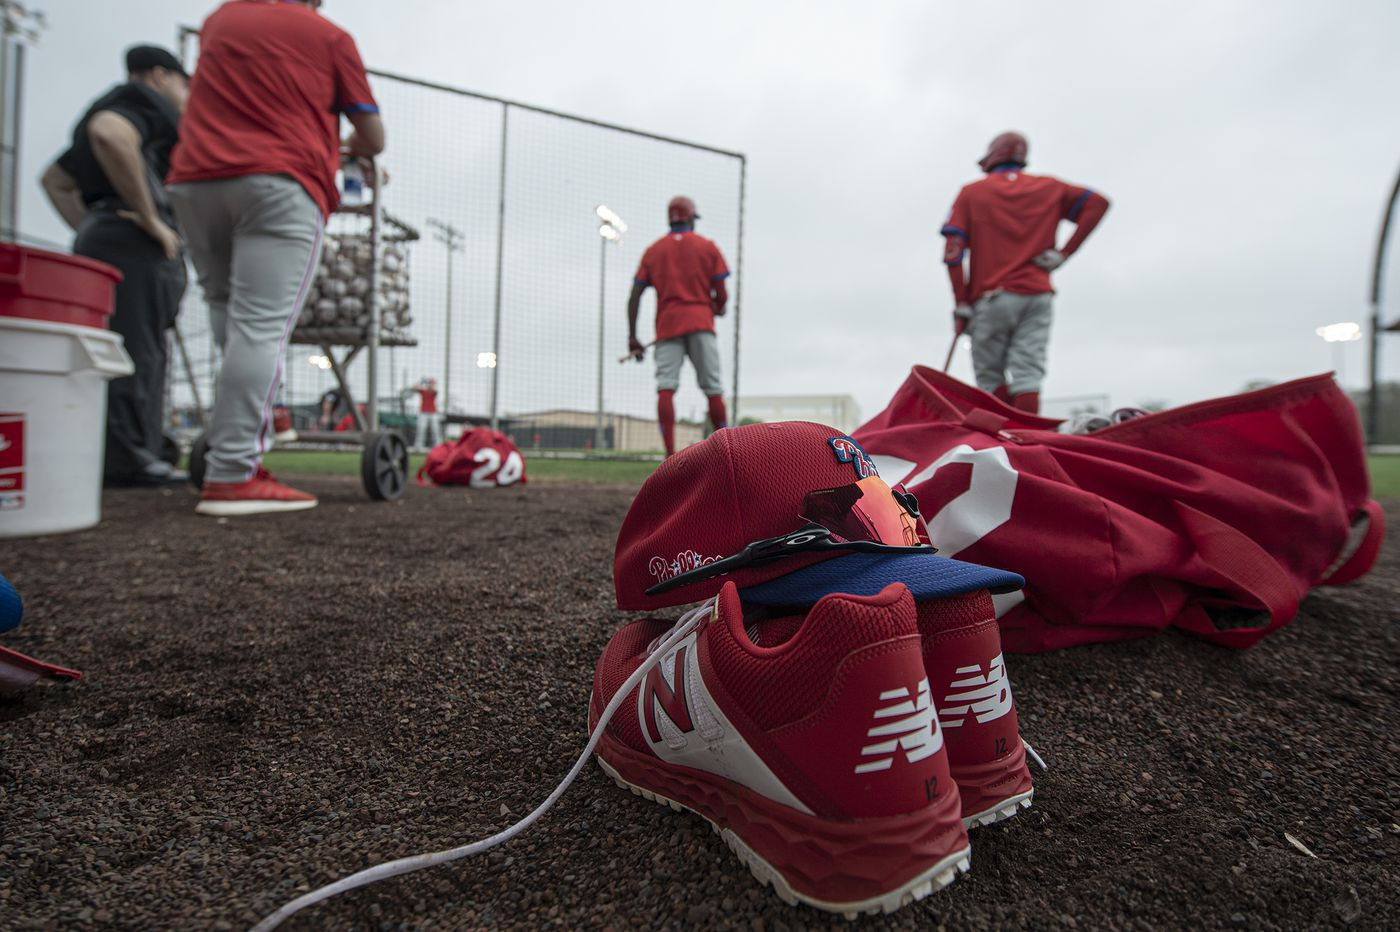 Phillies set initial player pool before starting 'Summer Camp' this week in South Philly